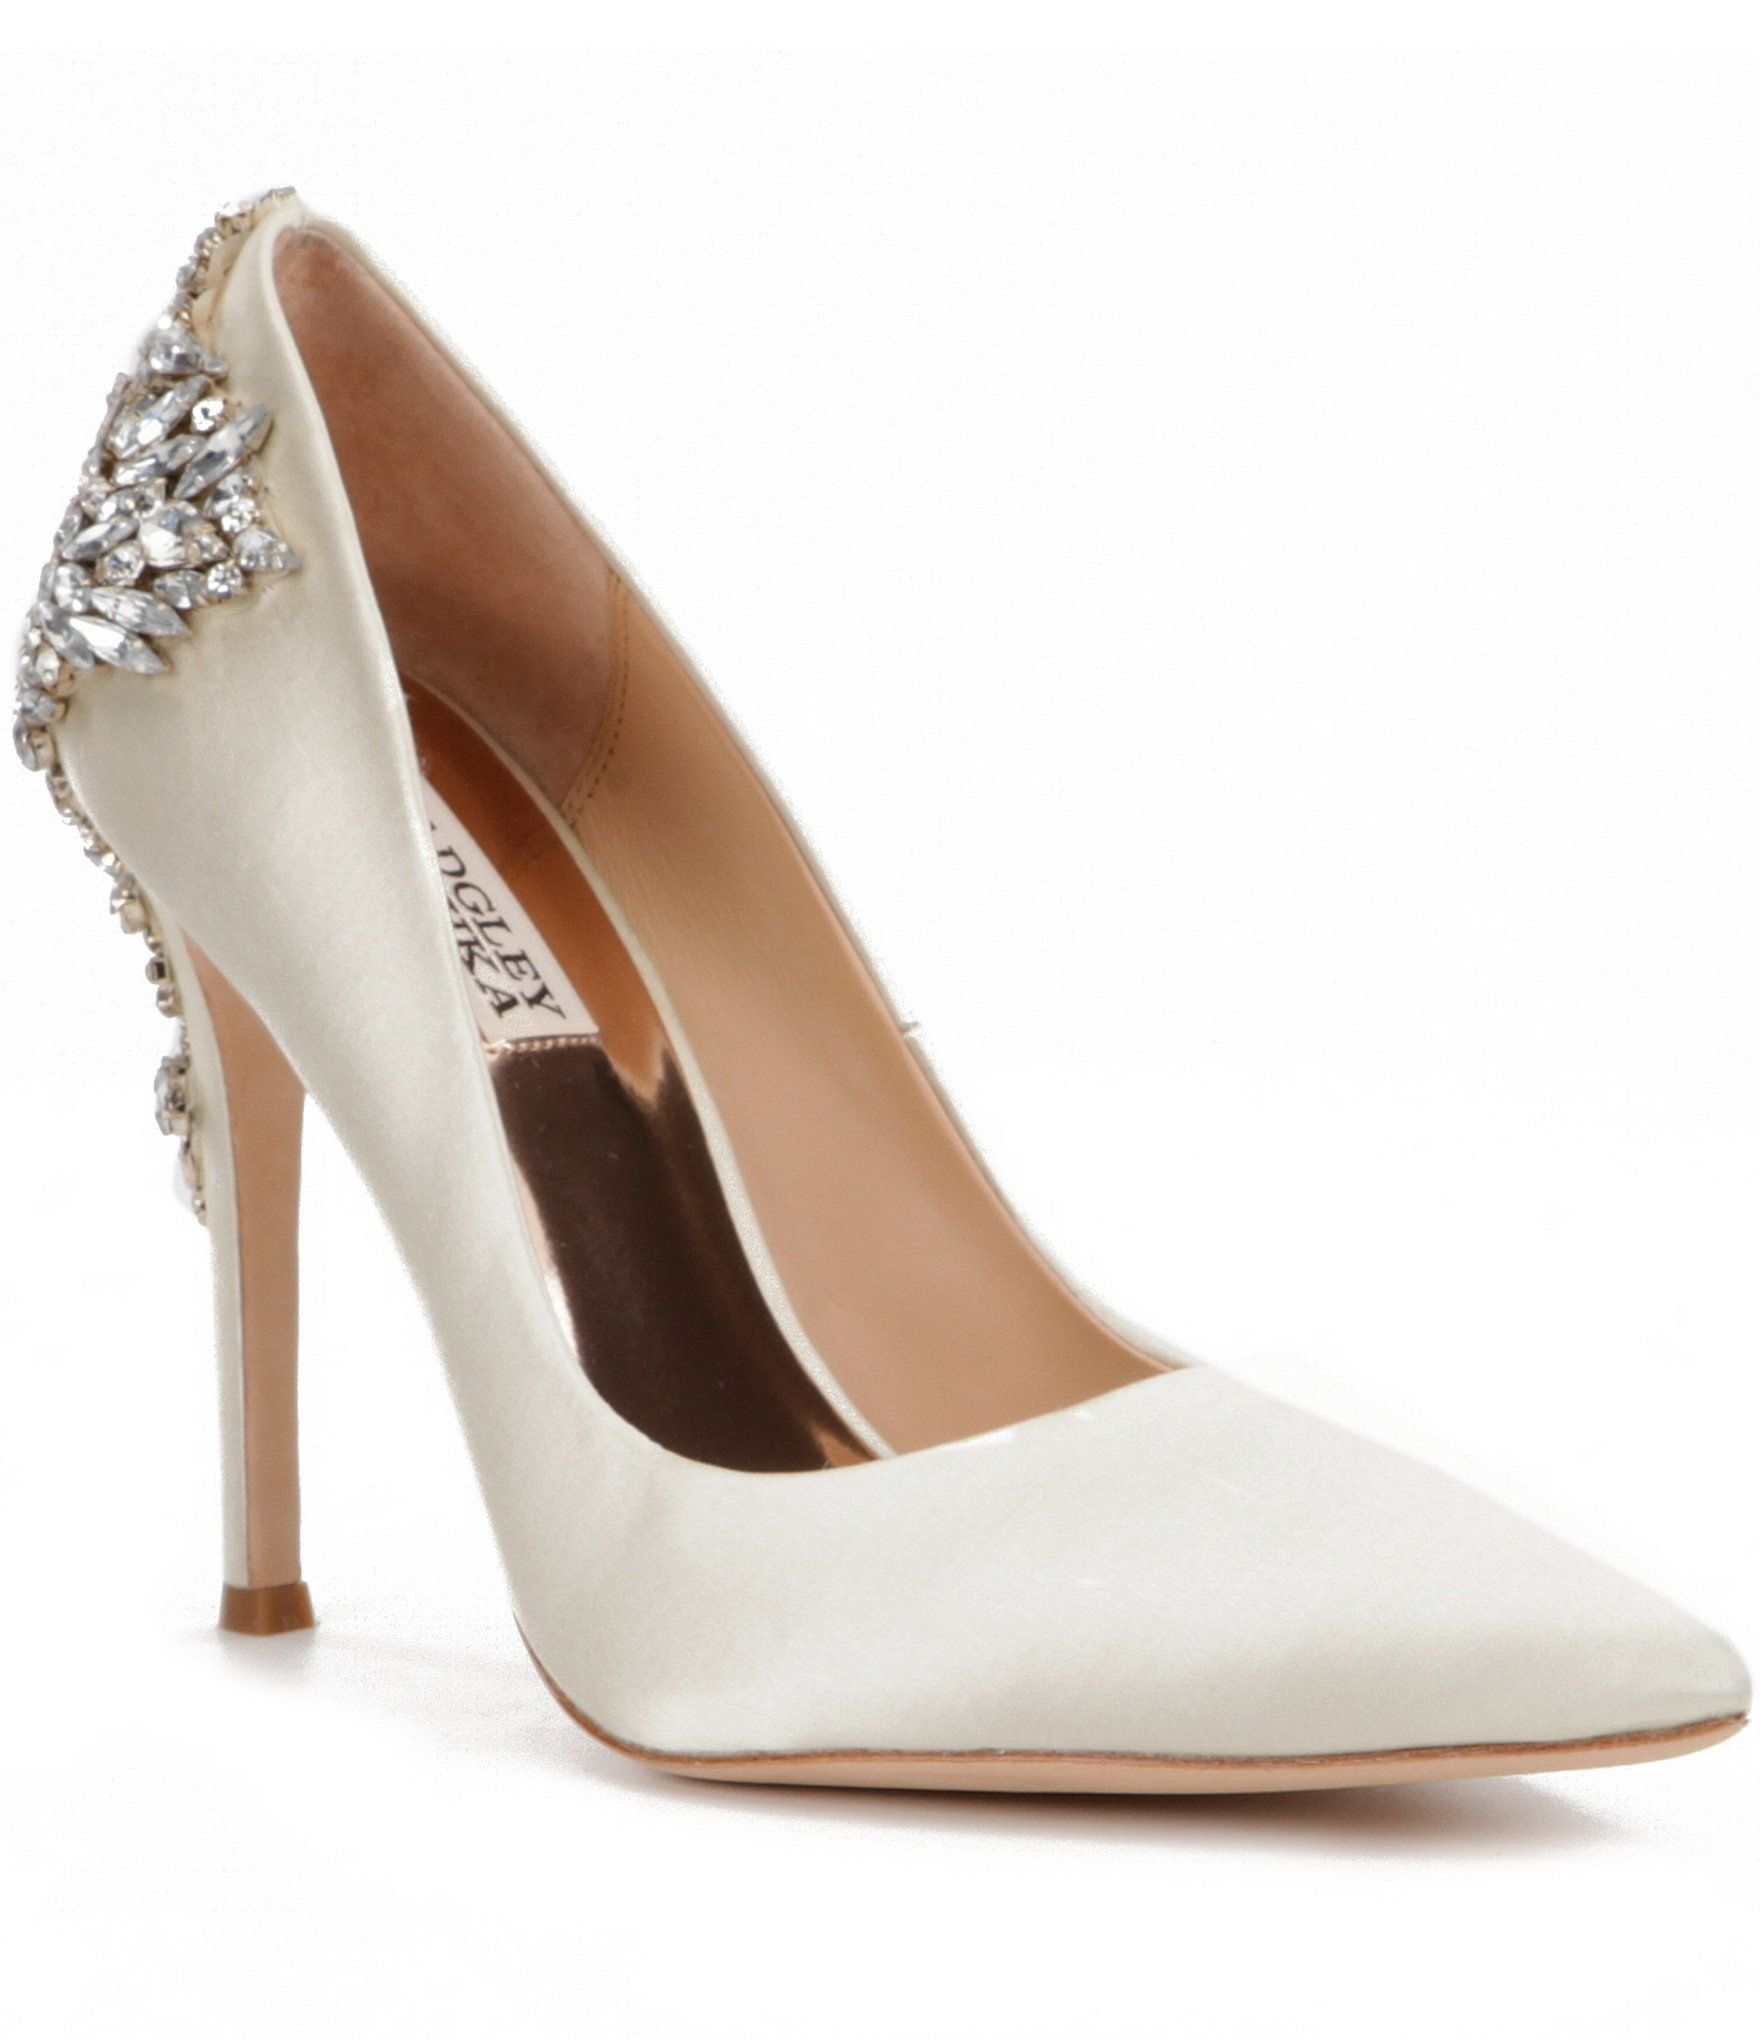 4c58b7b8c Badgley Mischka Gorgeous Satin CrystalEmbellished Pumps  Dillards